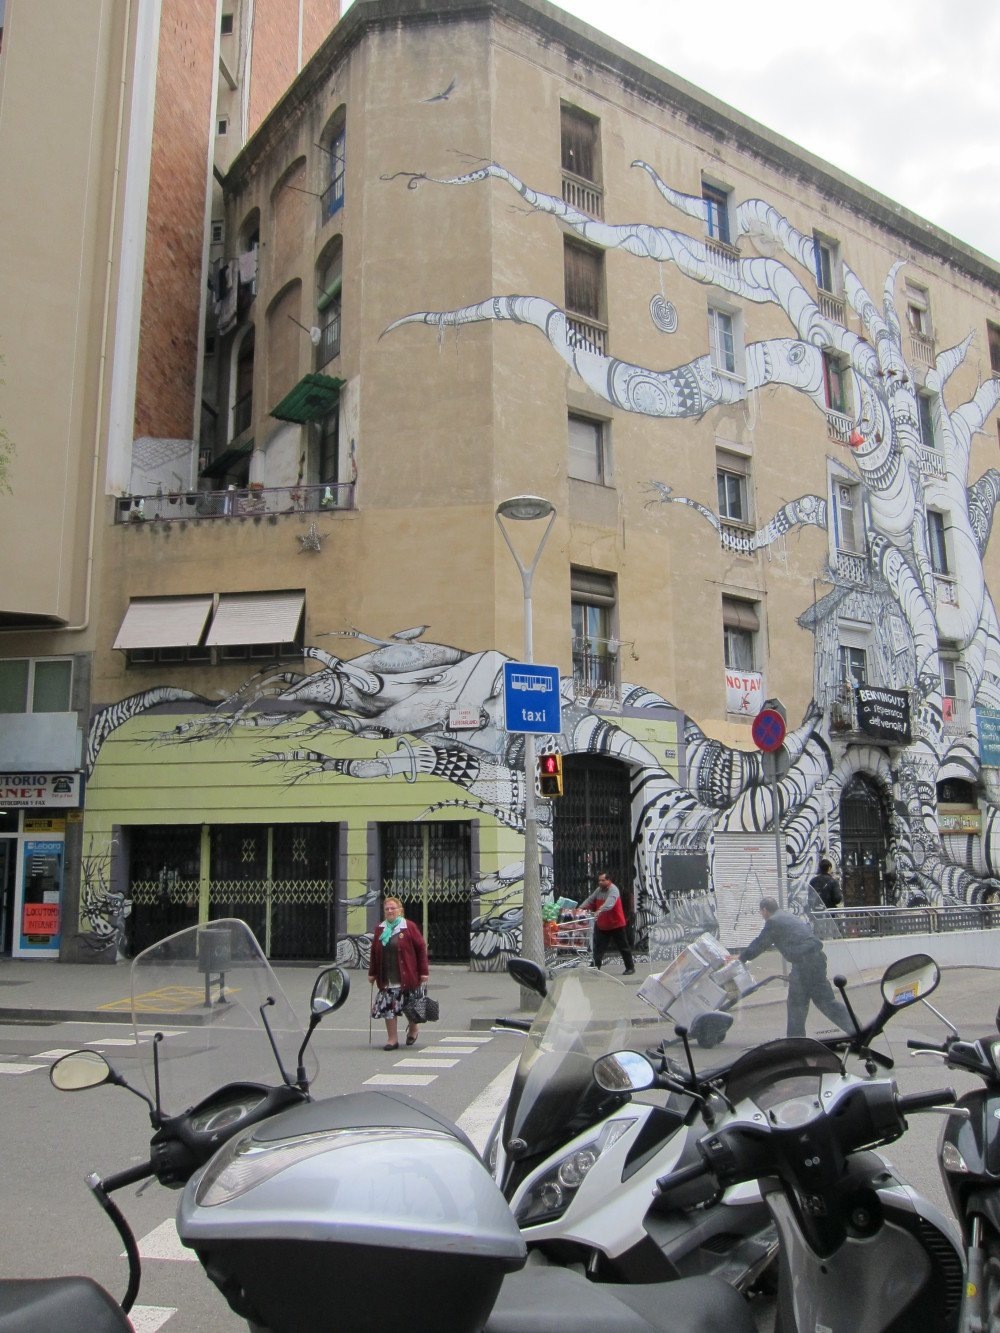 Street Art Continued in Barcelona